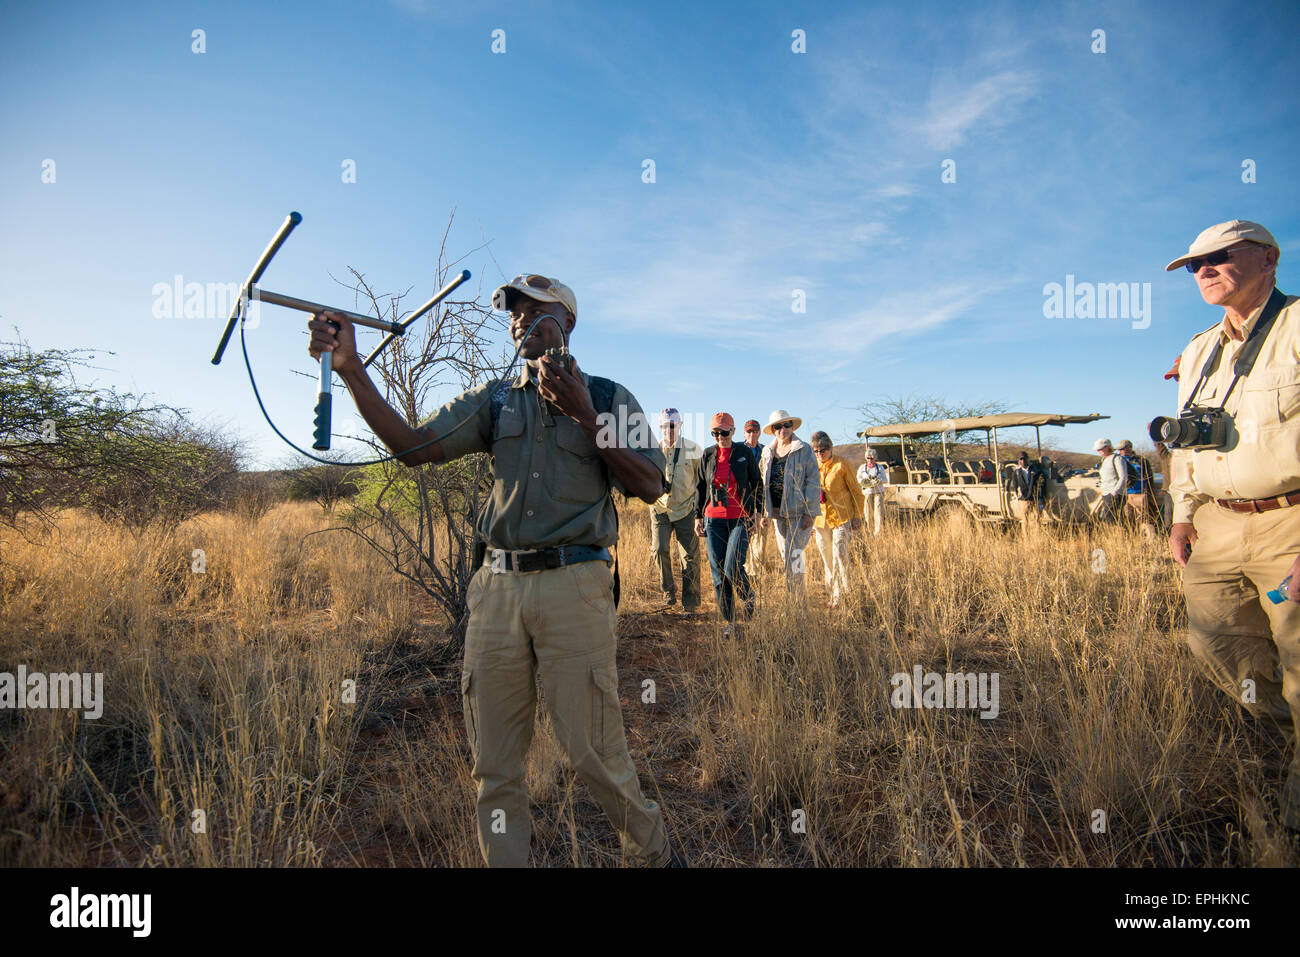 Africa, Namibia. AfriCat Foundation. Tour guide using device. - Stock Image